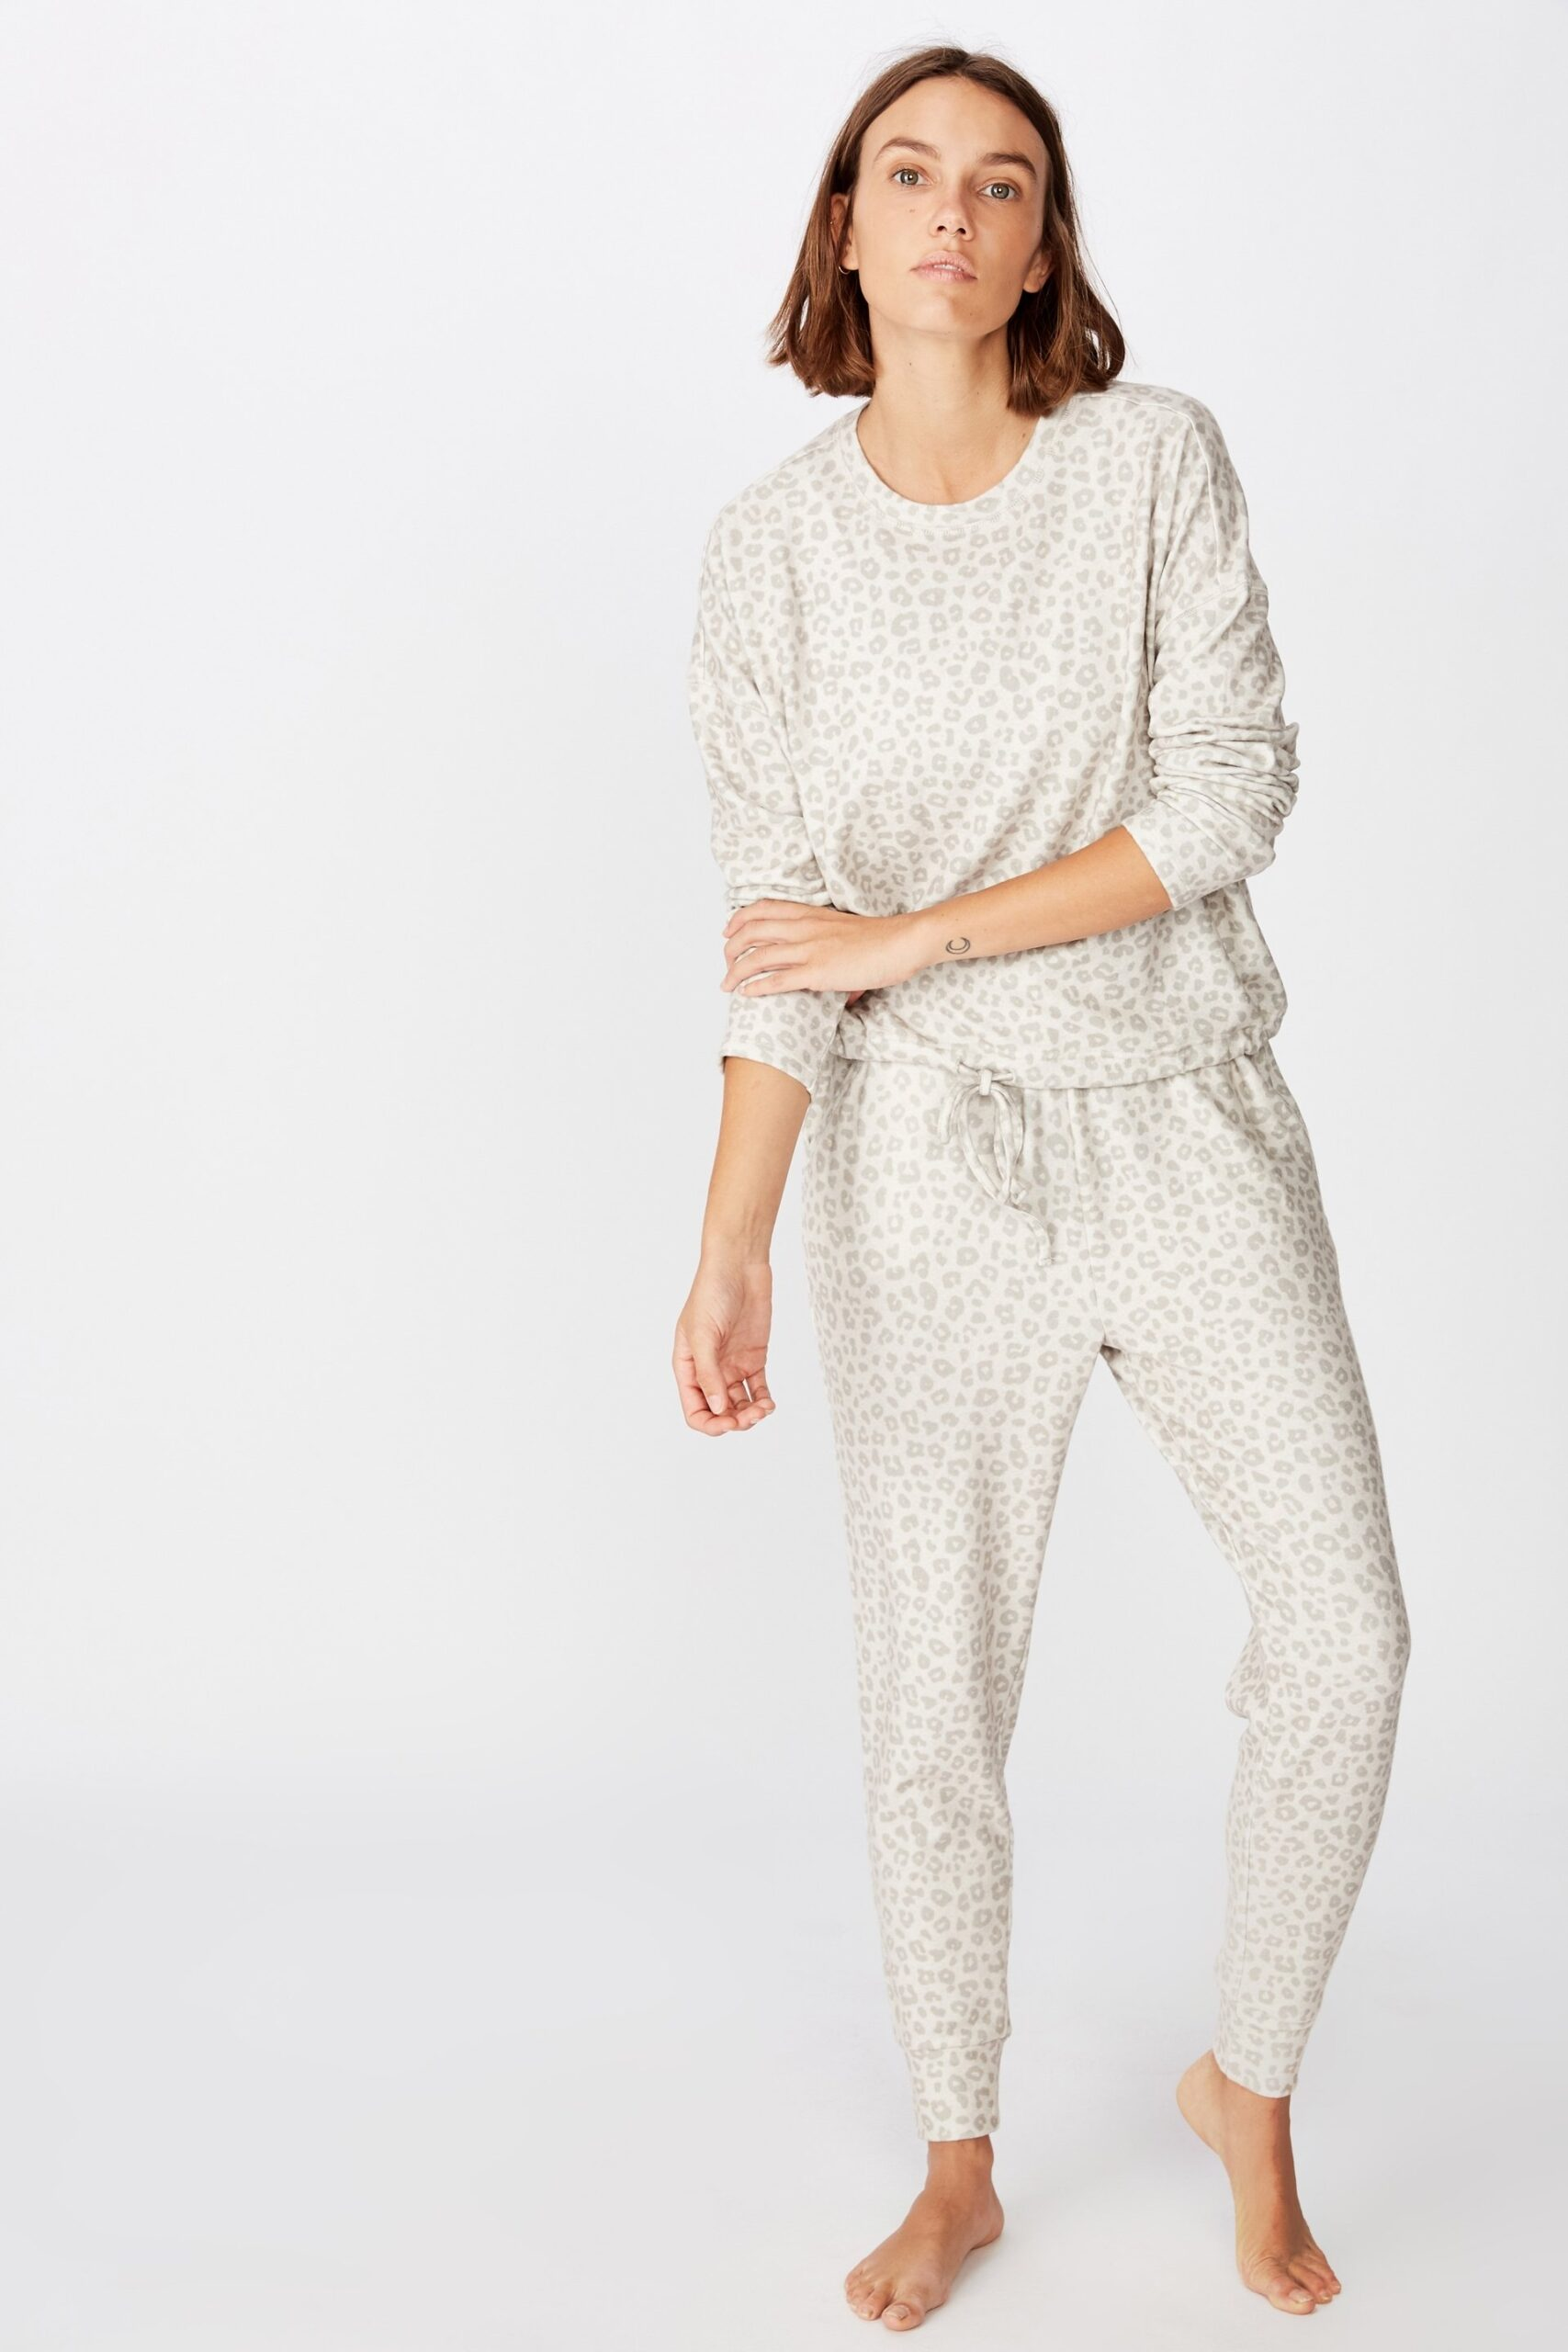 Slip into one of these adorably chic and on trend Loungewear Sets and Matching Sweatsuits, look cute as could be from the comfort of your sofa, and and stay on budget. These adorable and under $50 cozy and chic sets will get you through the season in total comfort! | glitterinc.com | @glitterinc // Cotton On Body Supersoft Slim Fit Pant in Tonal Animal